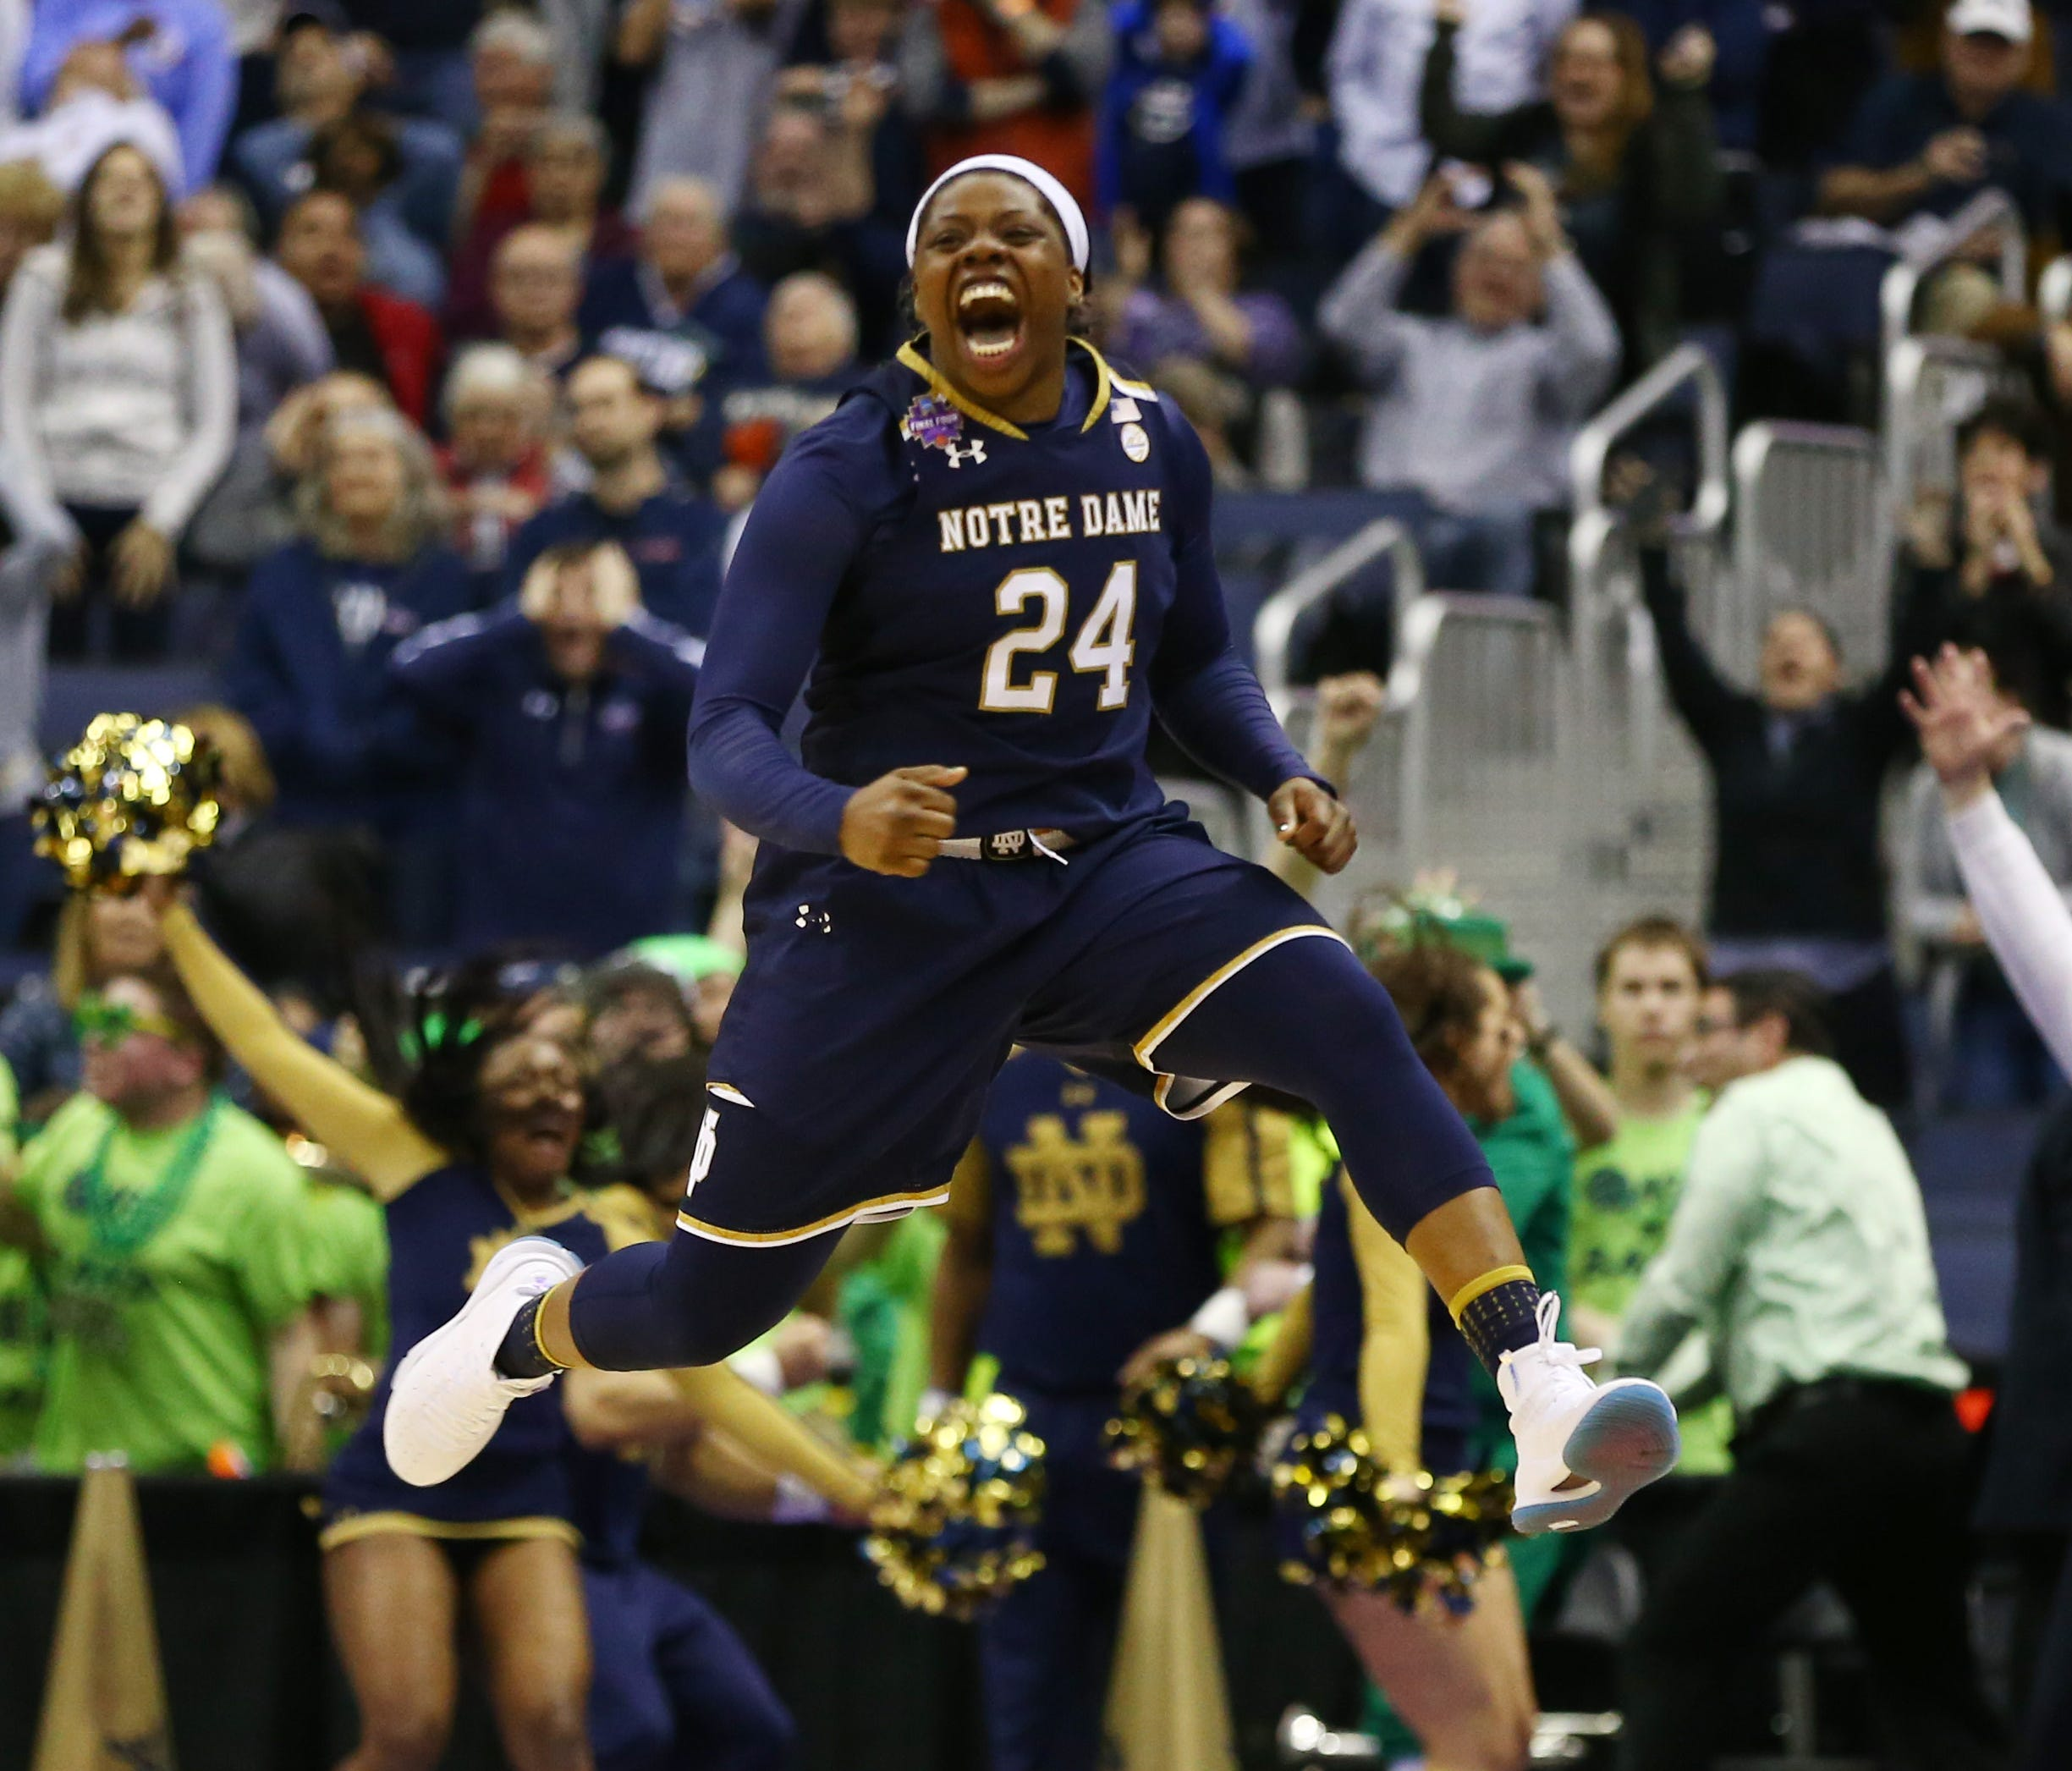 Notre Dame Fighting Irish guard Arike Ogunbowale reacts after hitting the game winning shot against the Connecticut Huskies in overtime in the semifinals of the women's Final Four in the 2018 NCAA Tournament at Nationwide Arena.